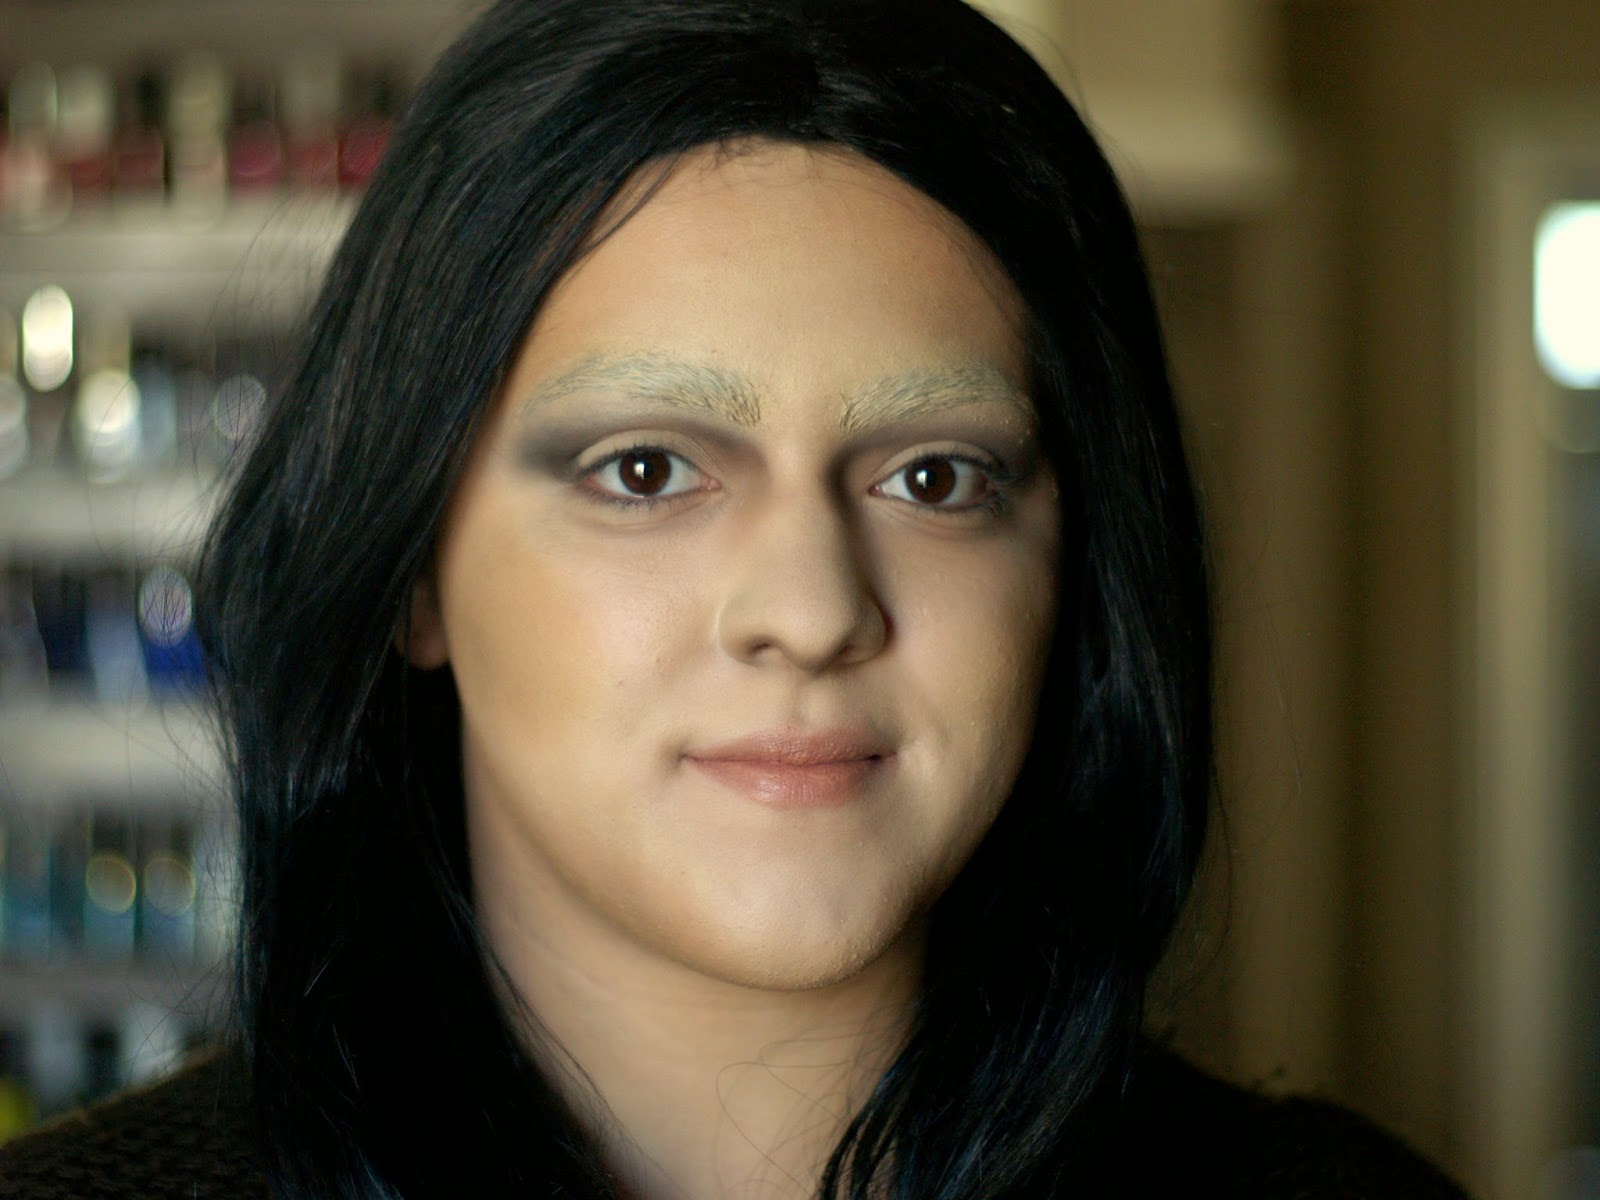 Mona Lisa Makeup